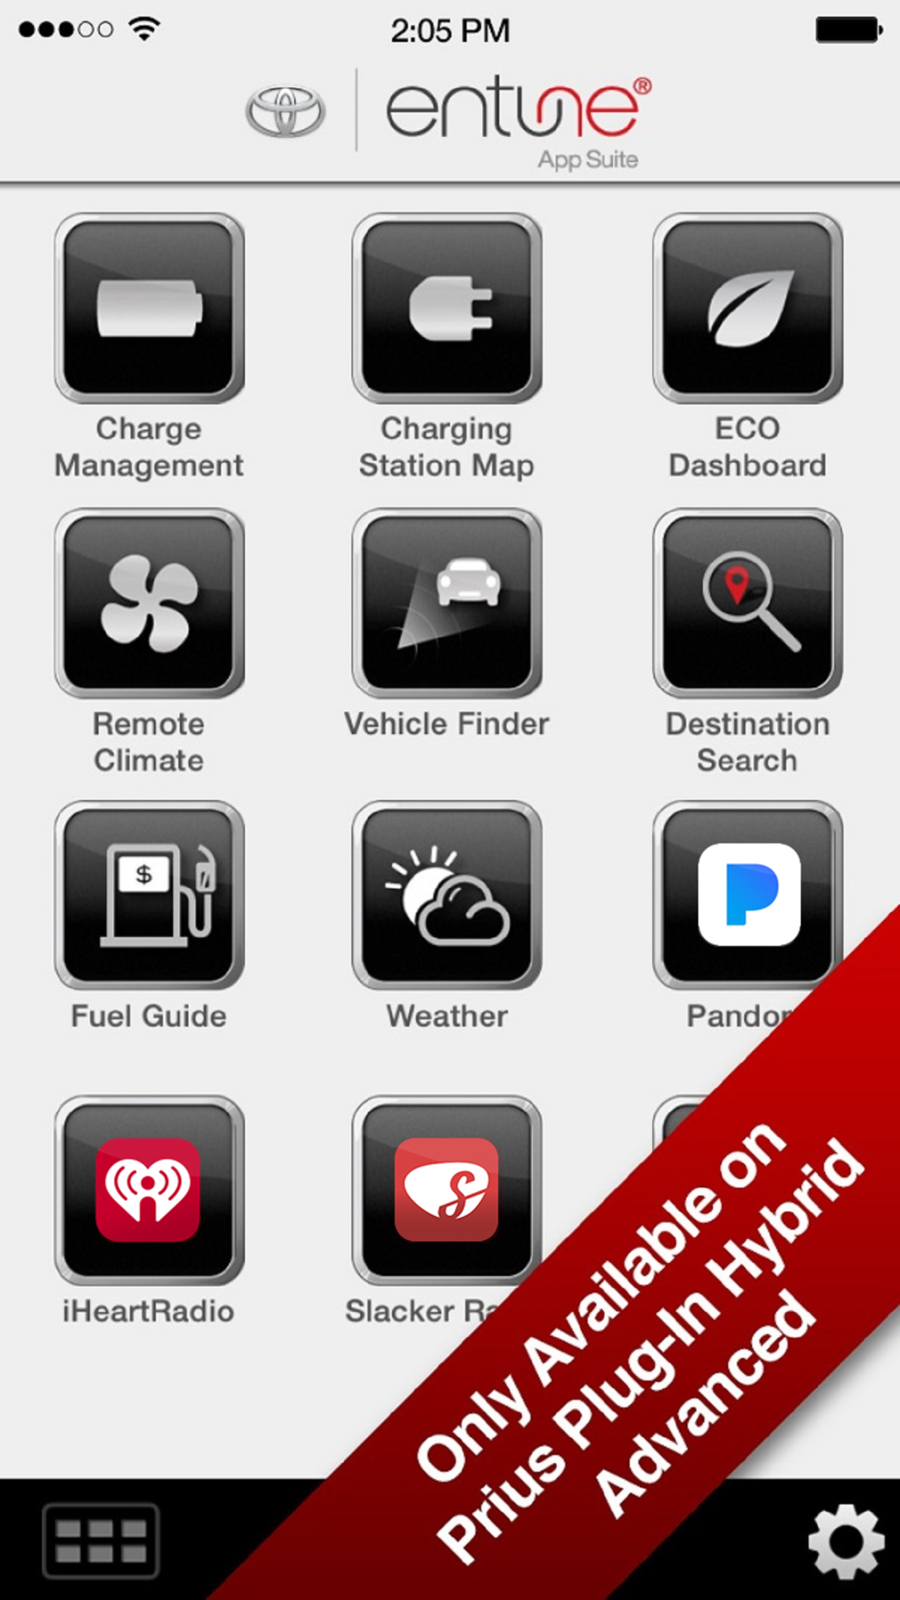 Toyota Entune iosLifestyleappapps Lifestyle apps